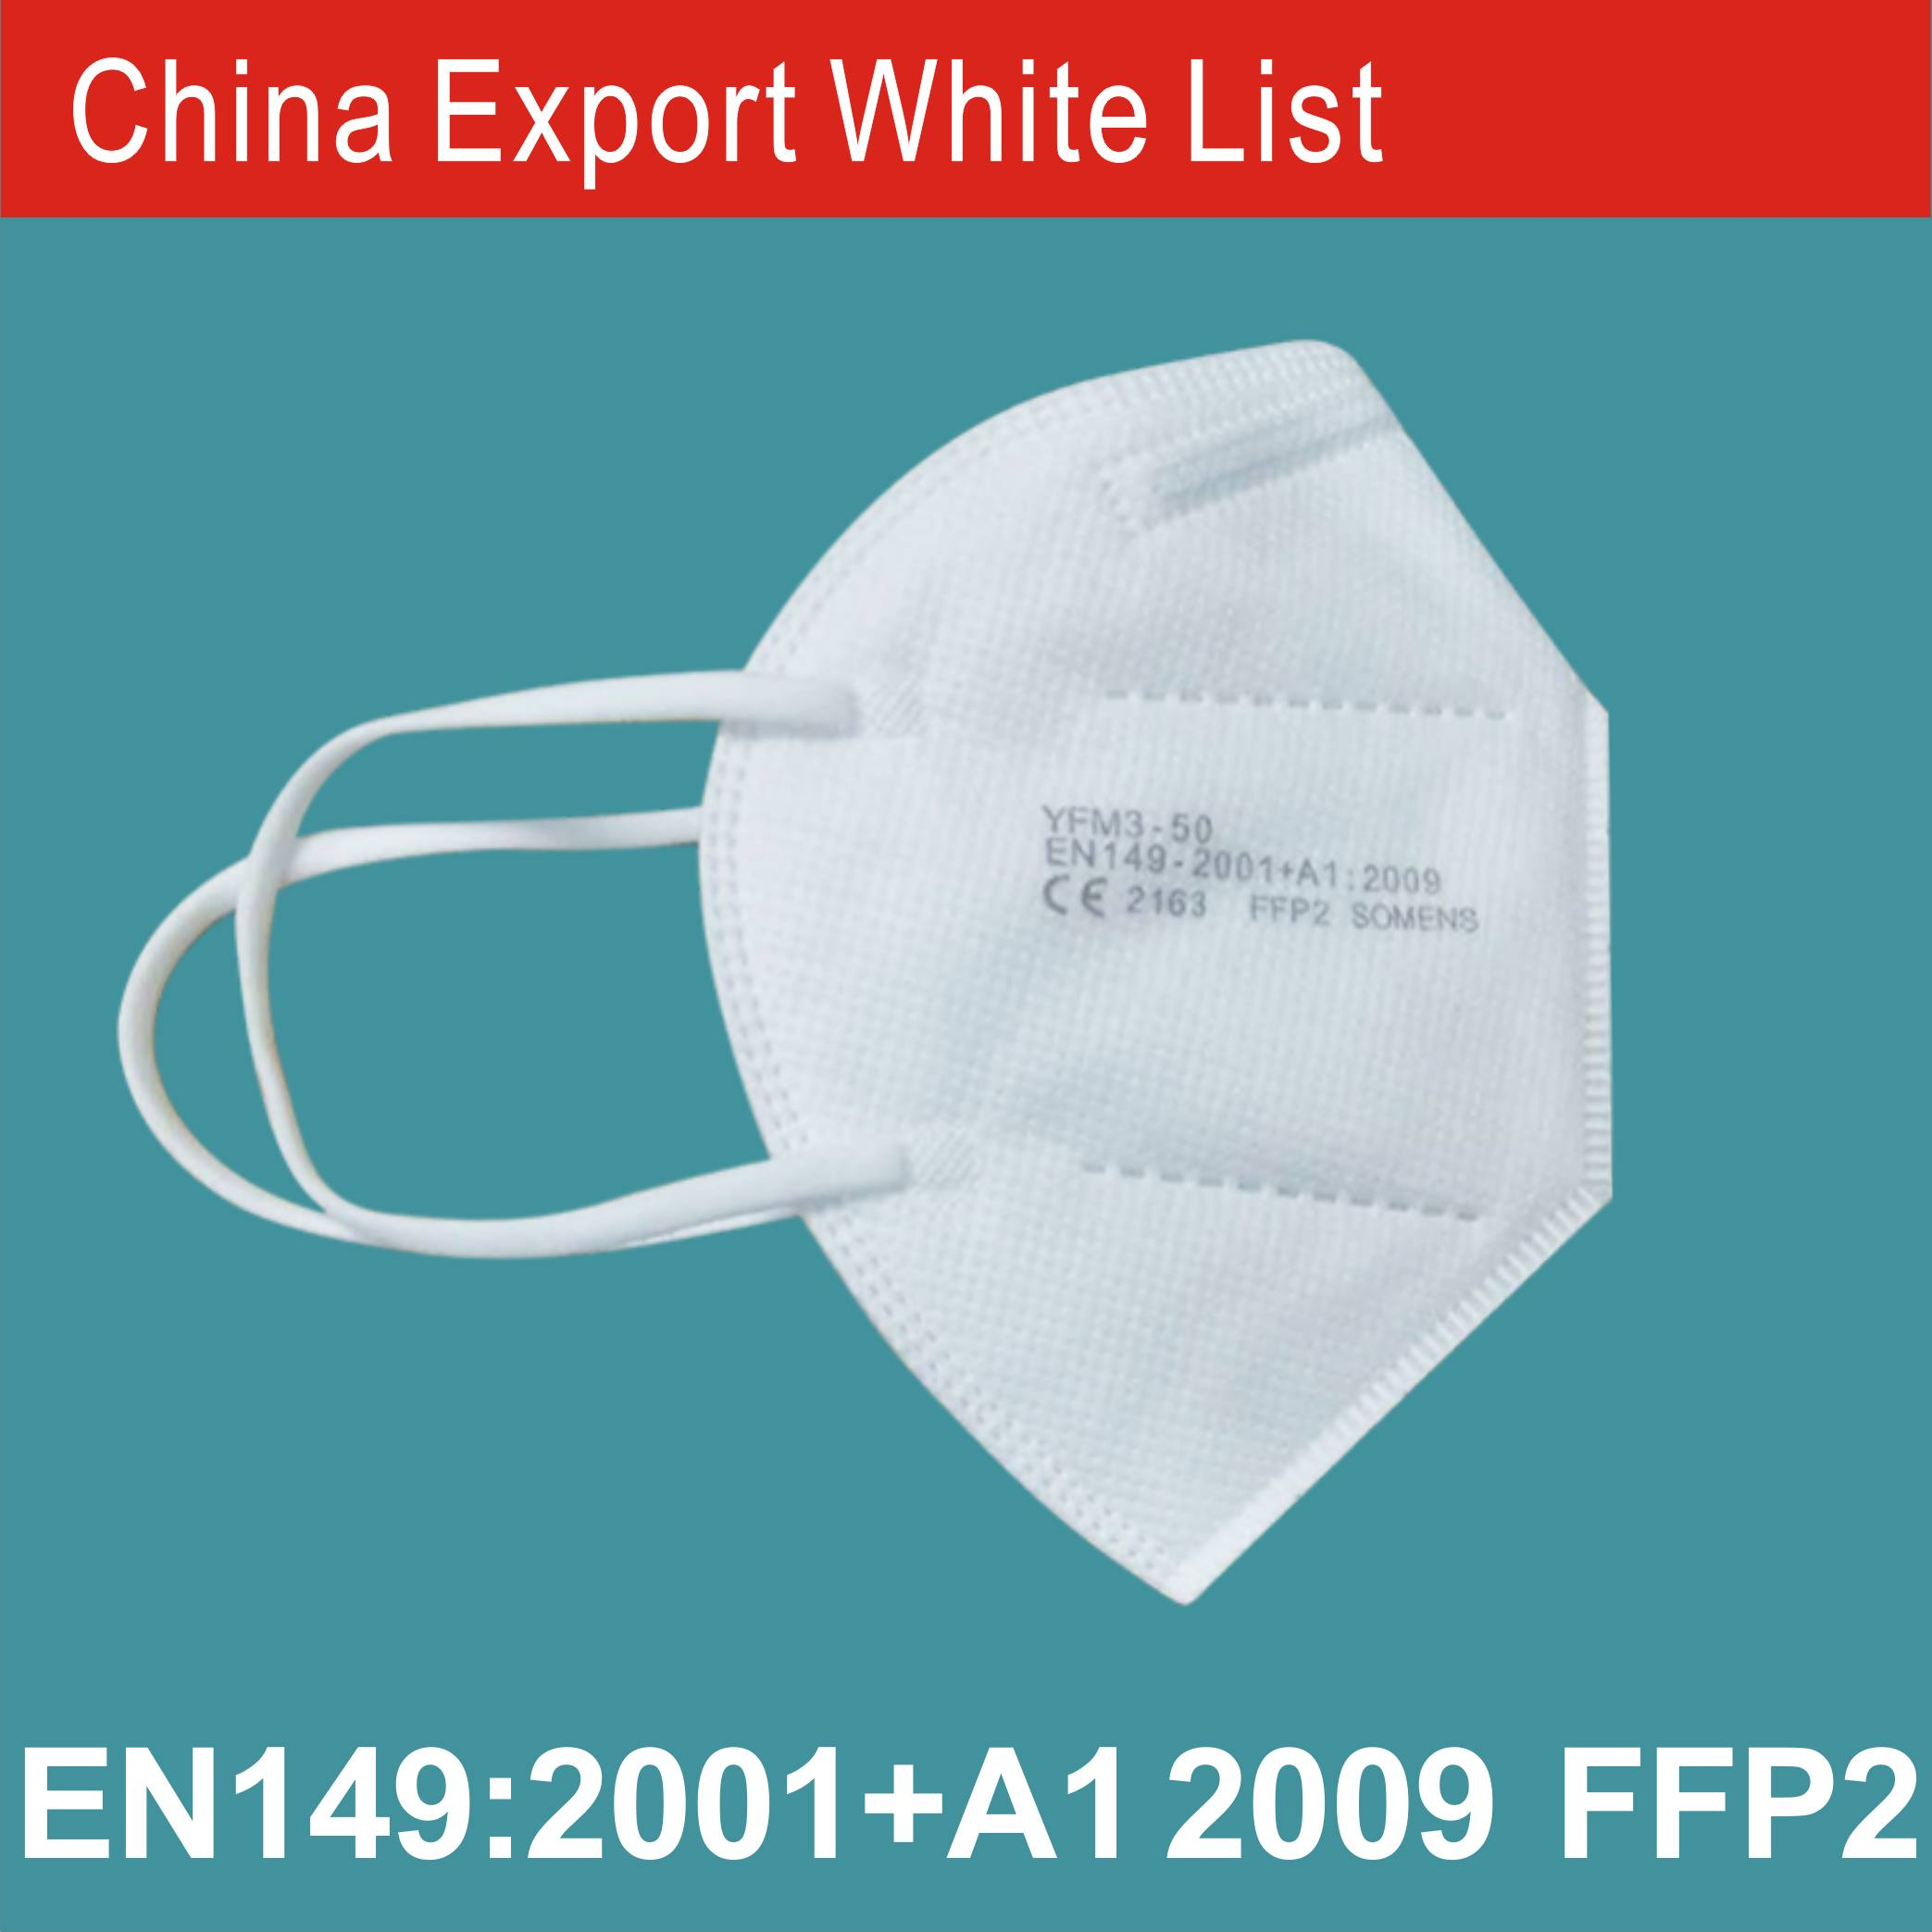 FFP2 face mask with CE